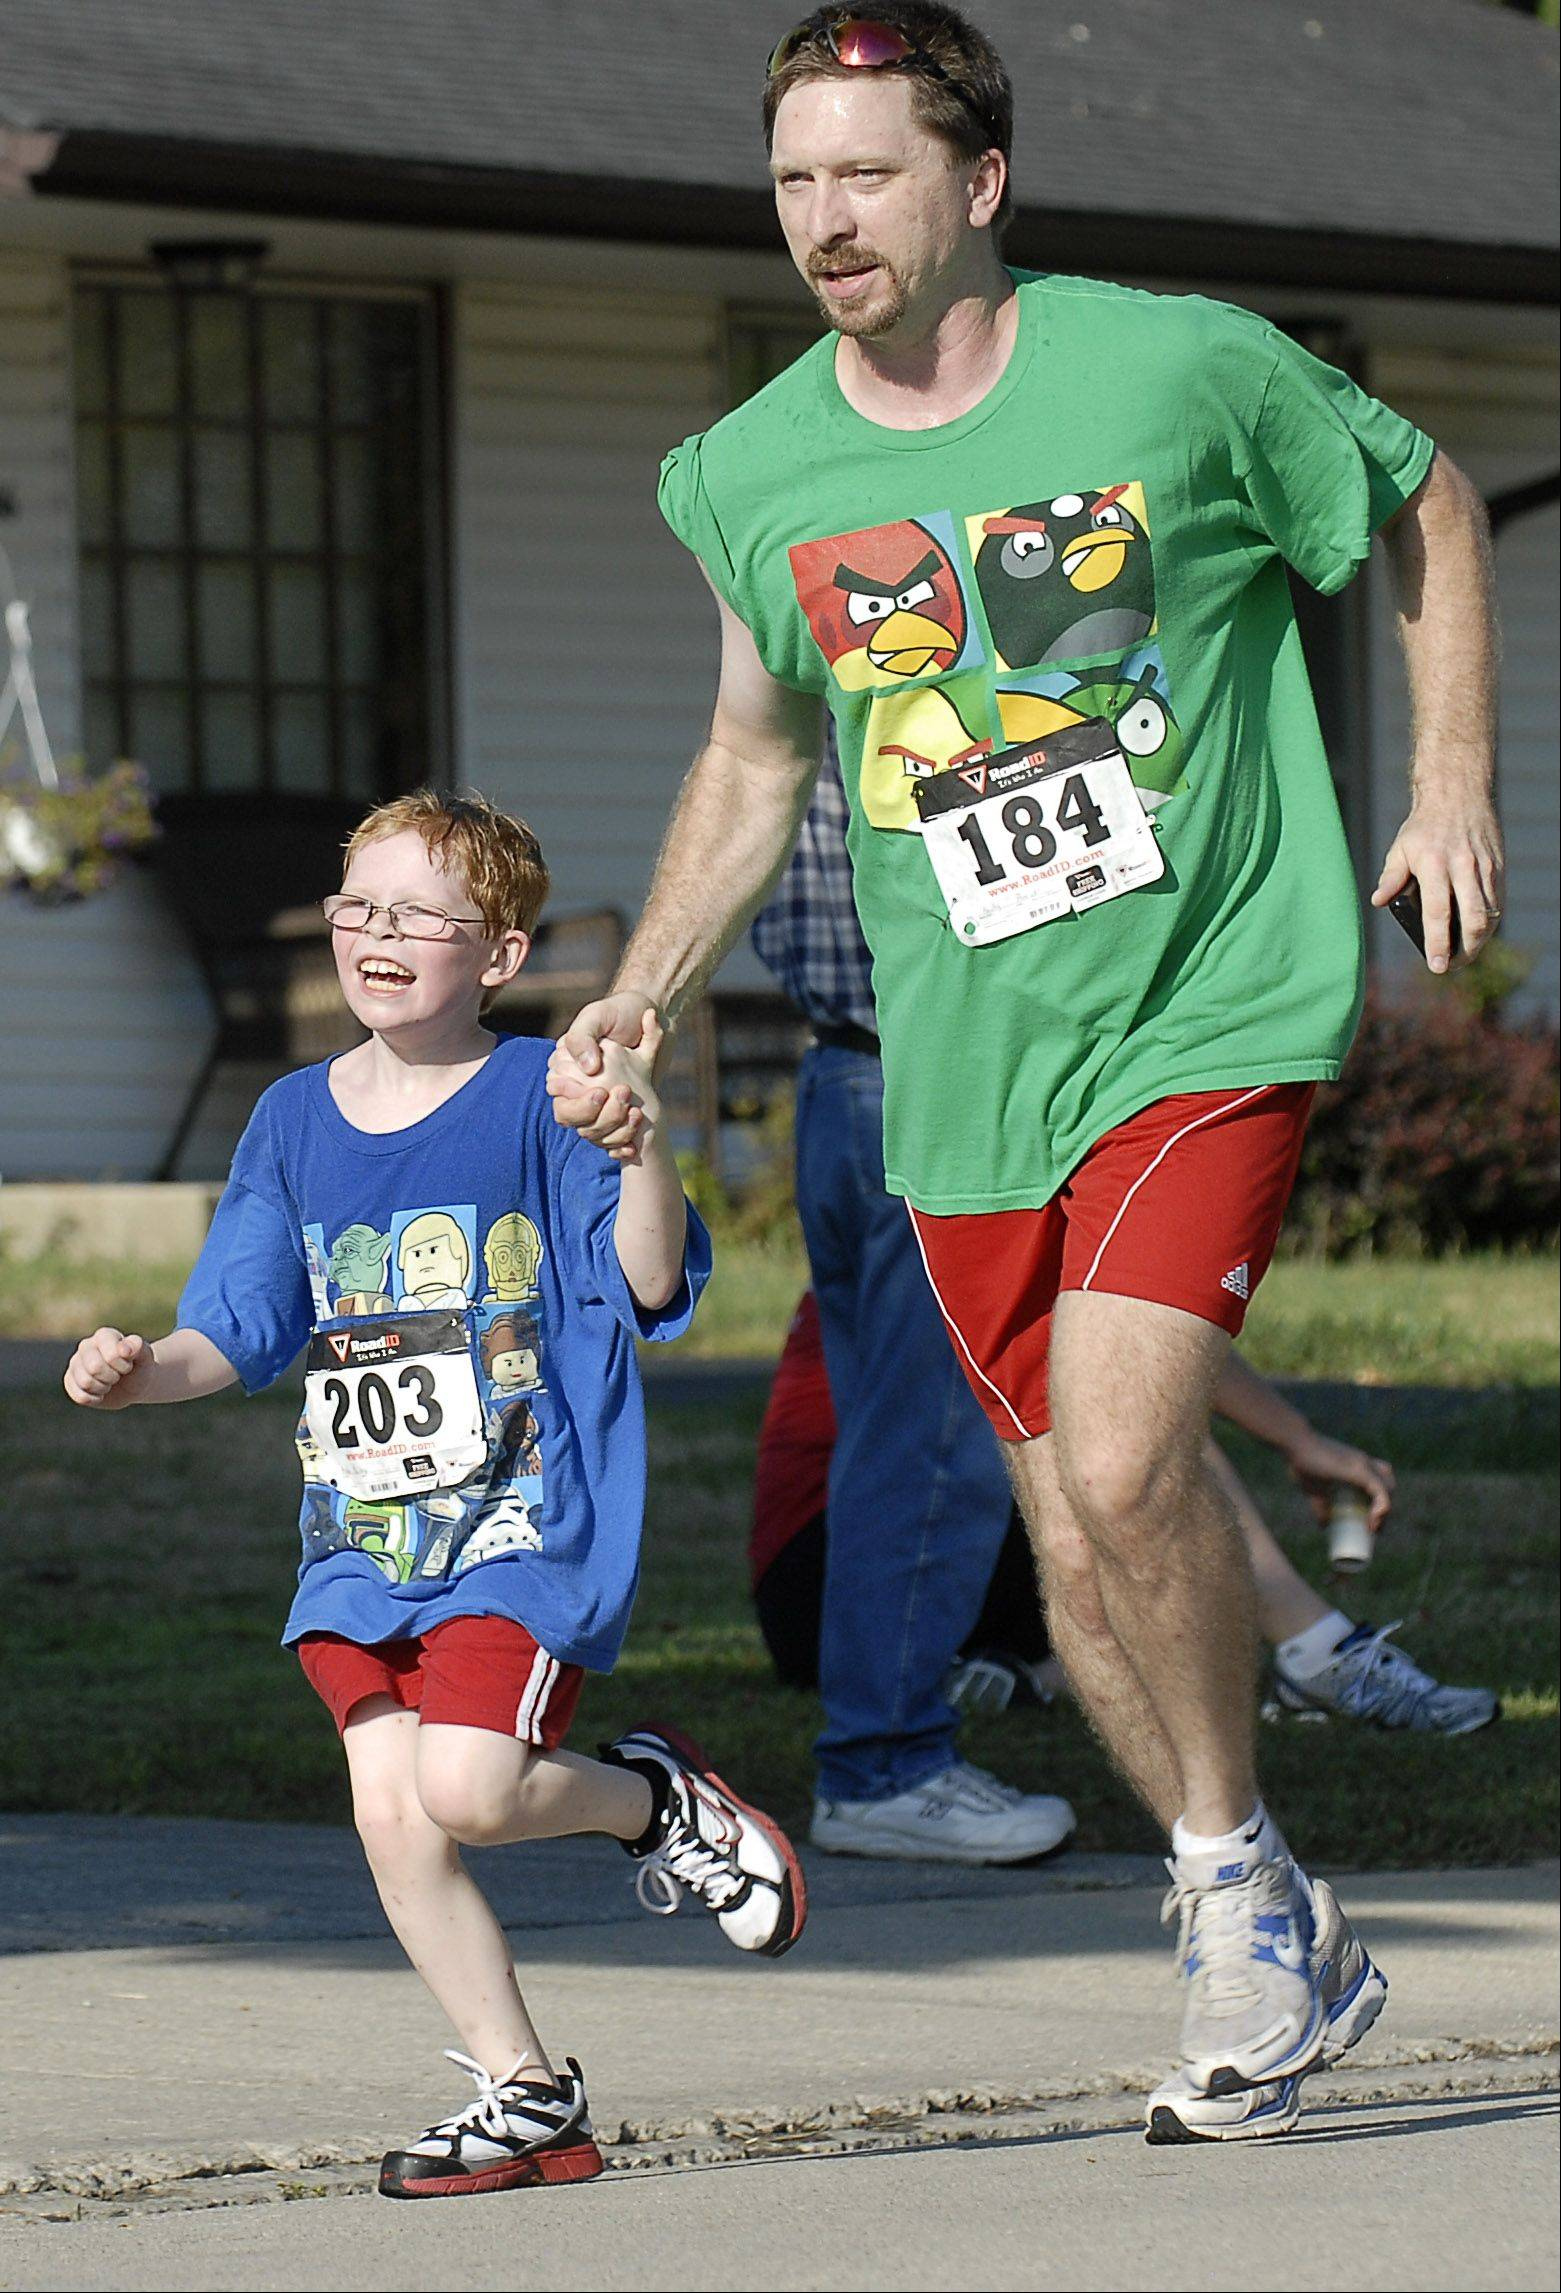 Aiden Bailey, 7, and his father, Patrick, both of Sugar Grove, join hands to cross the finish line together in the Sugar Grove Corn Boil 5K run/walk last year. The race weaves throughout the village and residents come out to cheer on the runners.